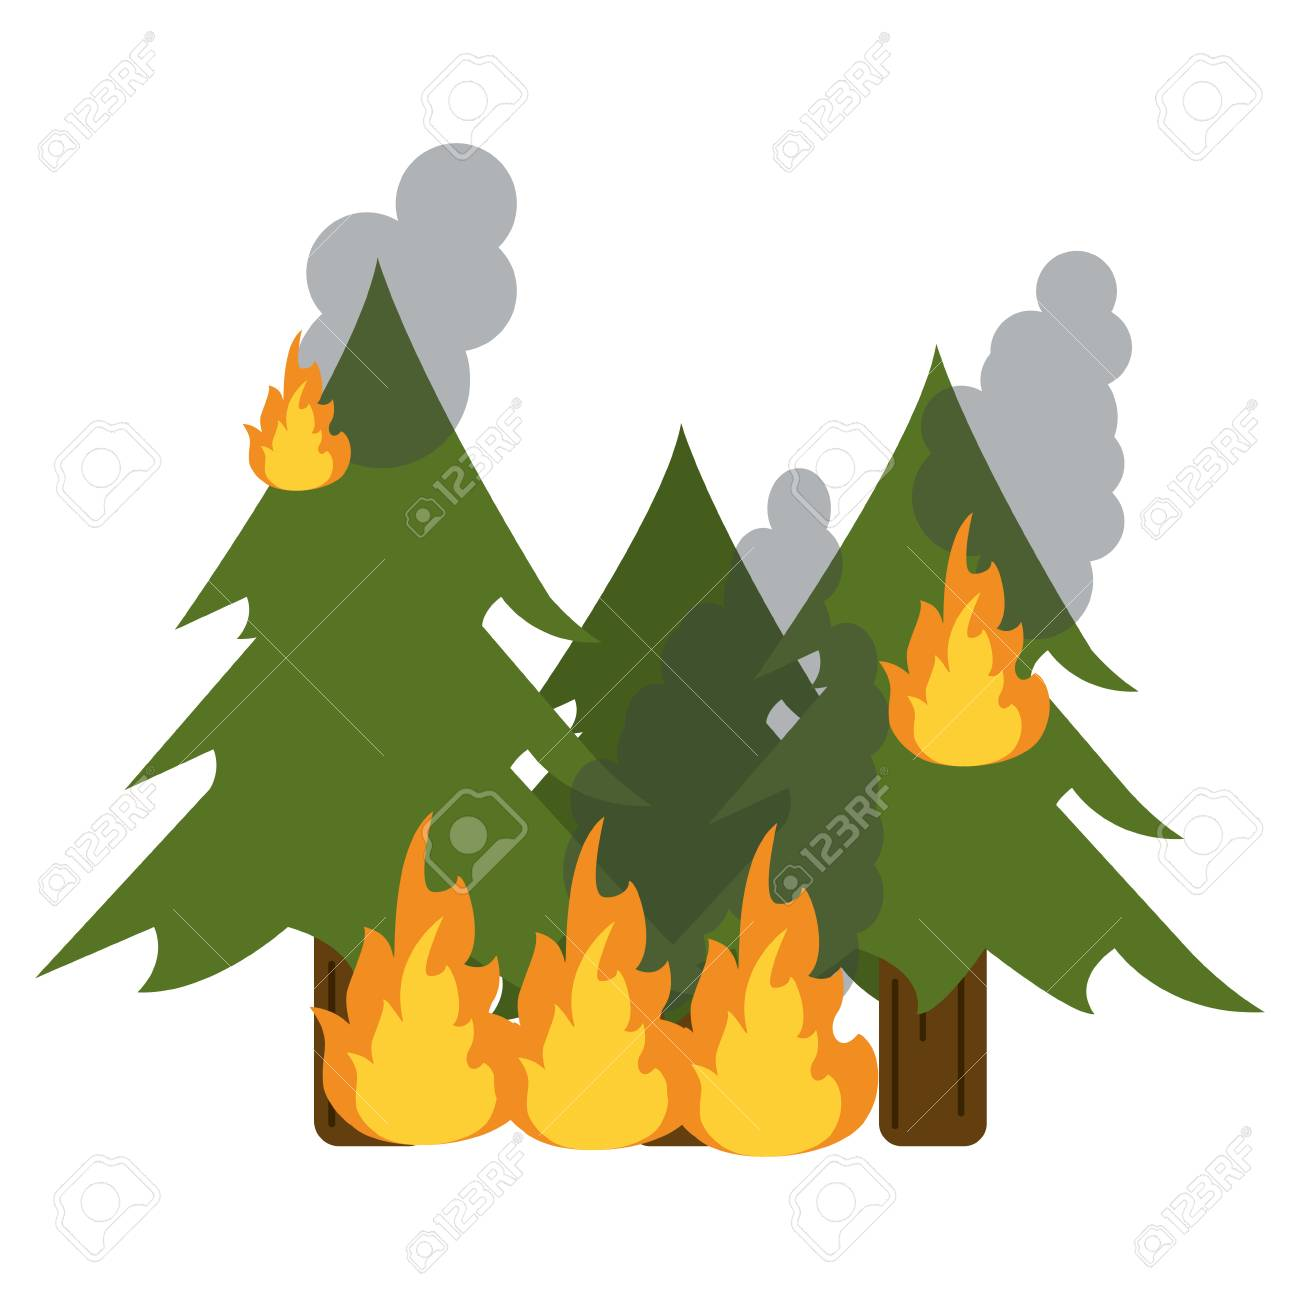 Trees Forest In Fire Cartoon Vector Illustration Graphic Design Royalty Free Cliparts Vectors And Stock Illustration Image 125094156 Gograph has the graphic or image that you need for as little as 5 dollars. trees forest in fire cartoon vector illustration graphic design